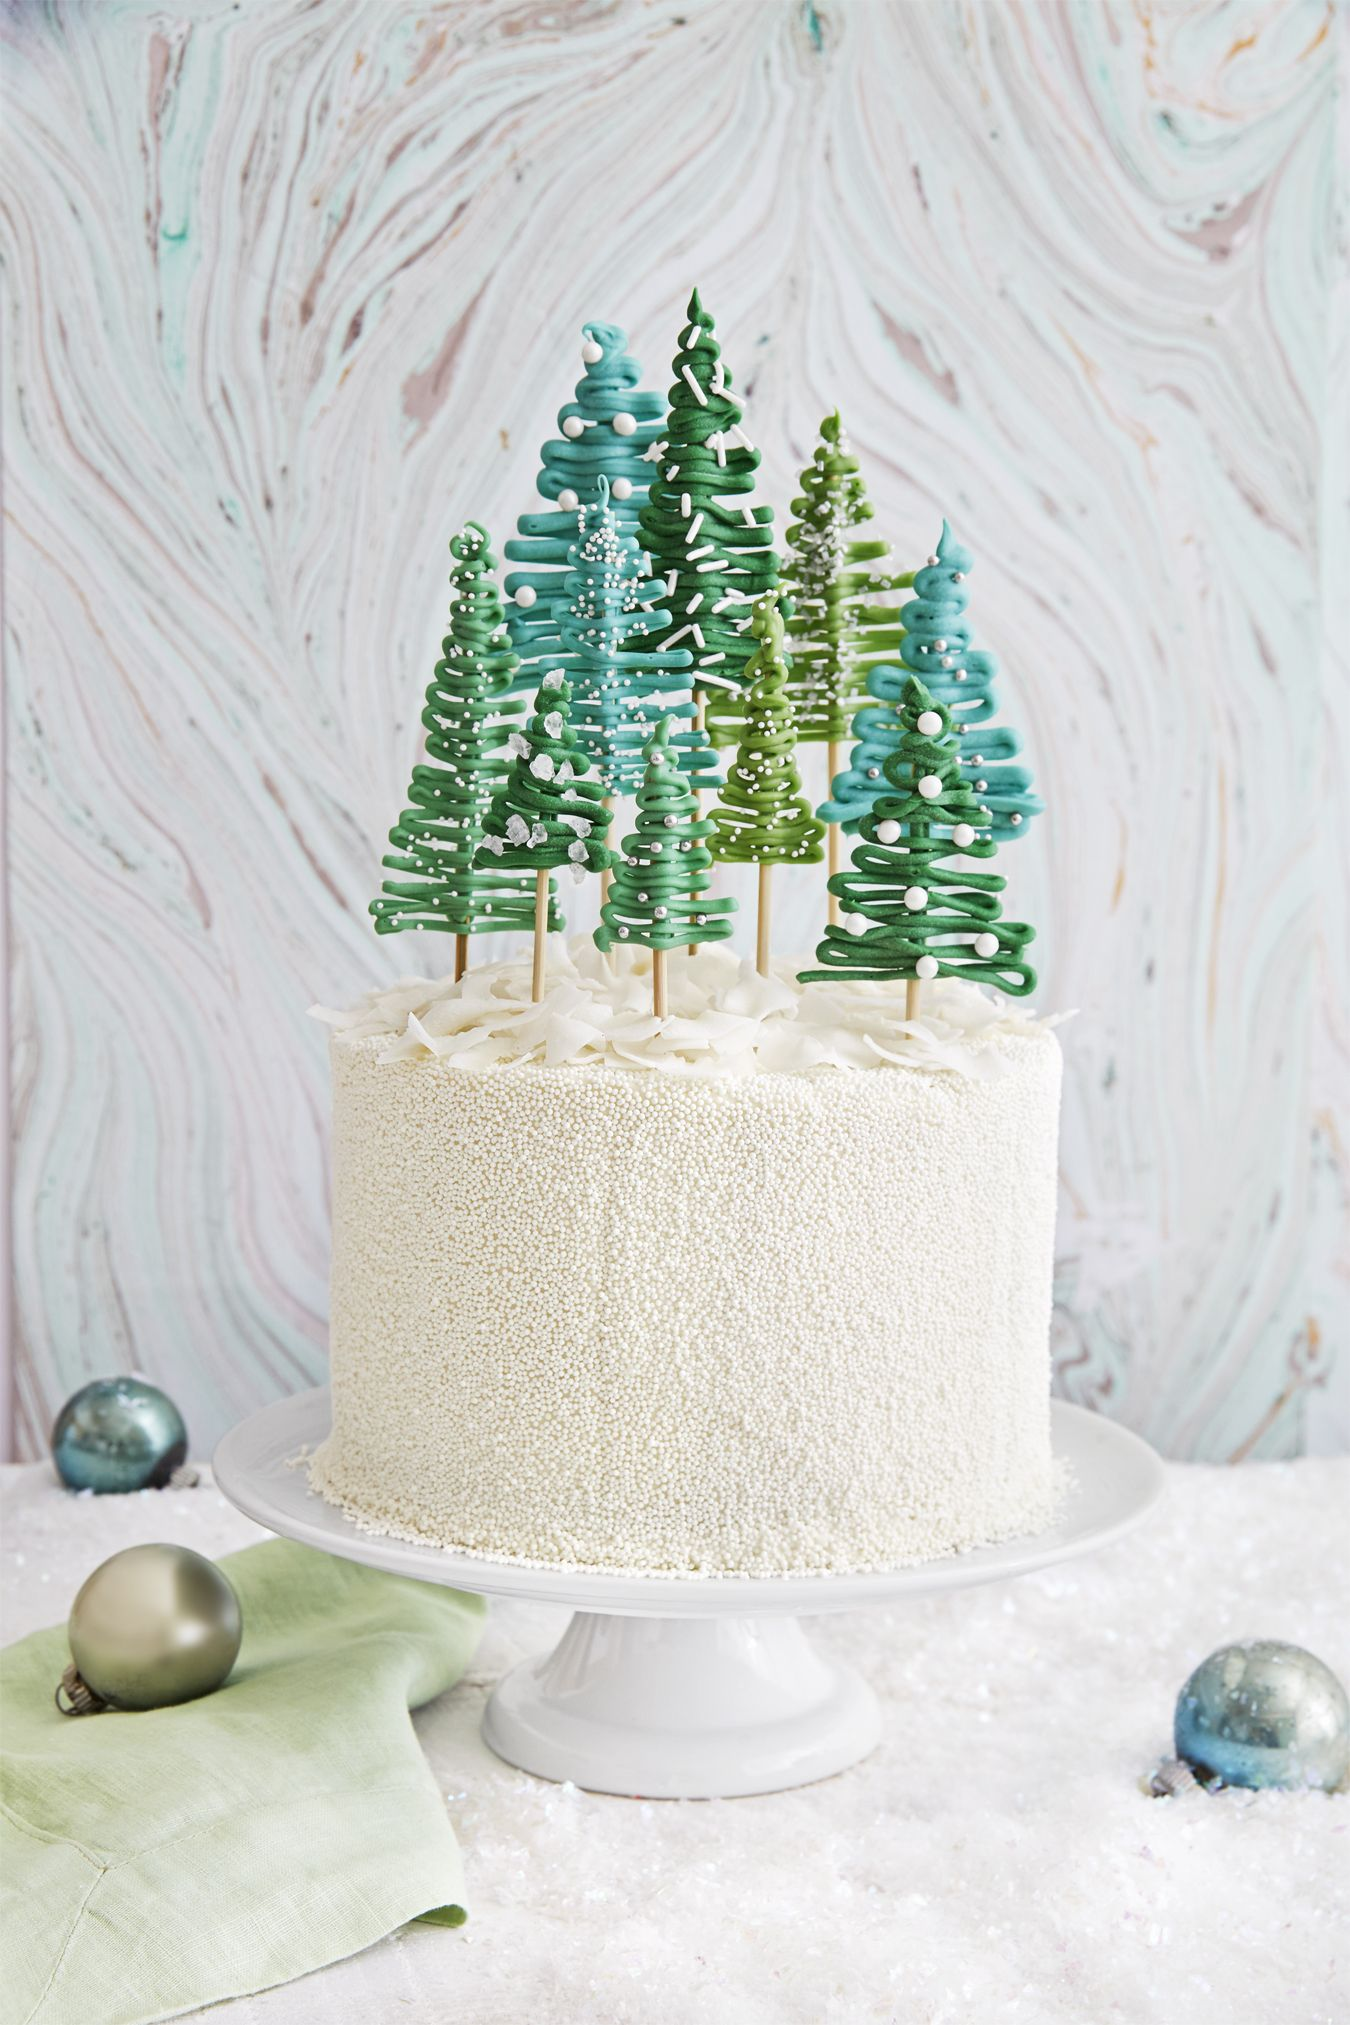 Best Pine Tree Cake Recipe - How To Make Christmas Tree Cake ...